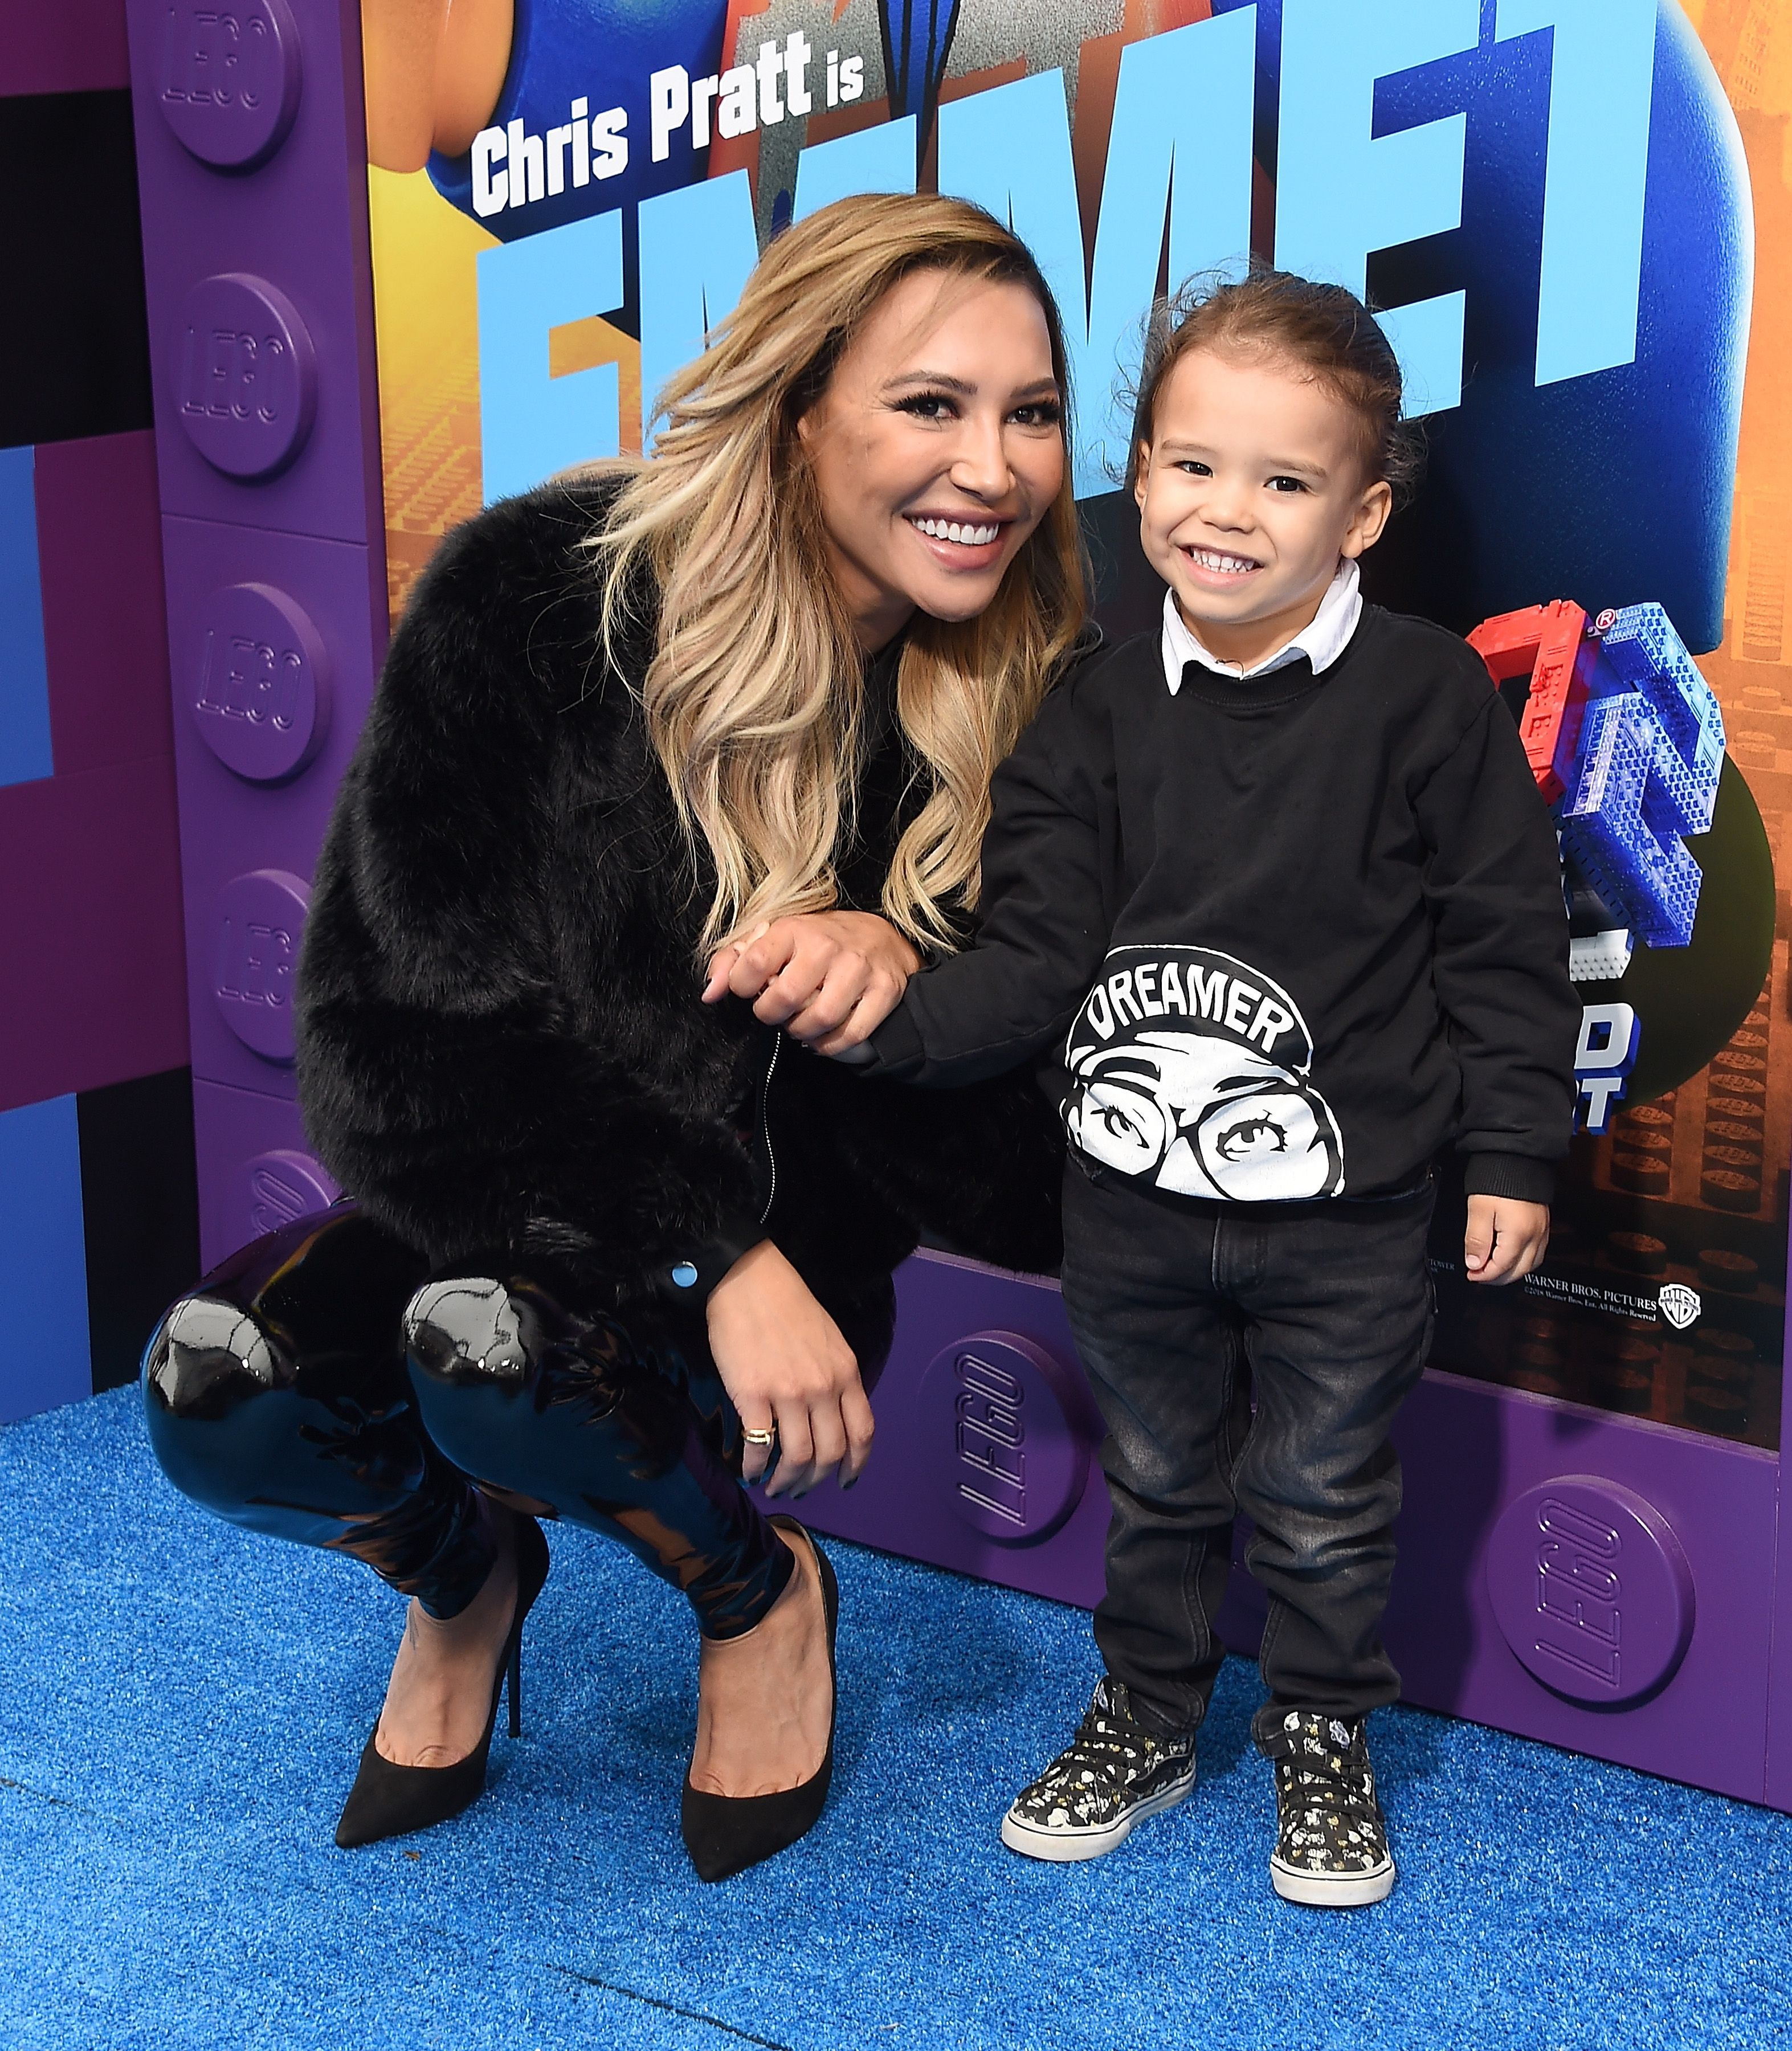 Naya Rivera May Have Sacrificed Her Own Life to Get Her 4-Year-Old Son Back on Their Boat